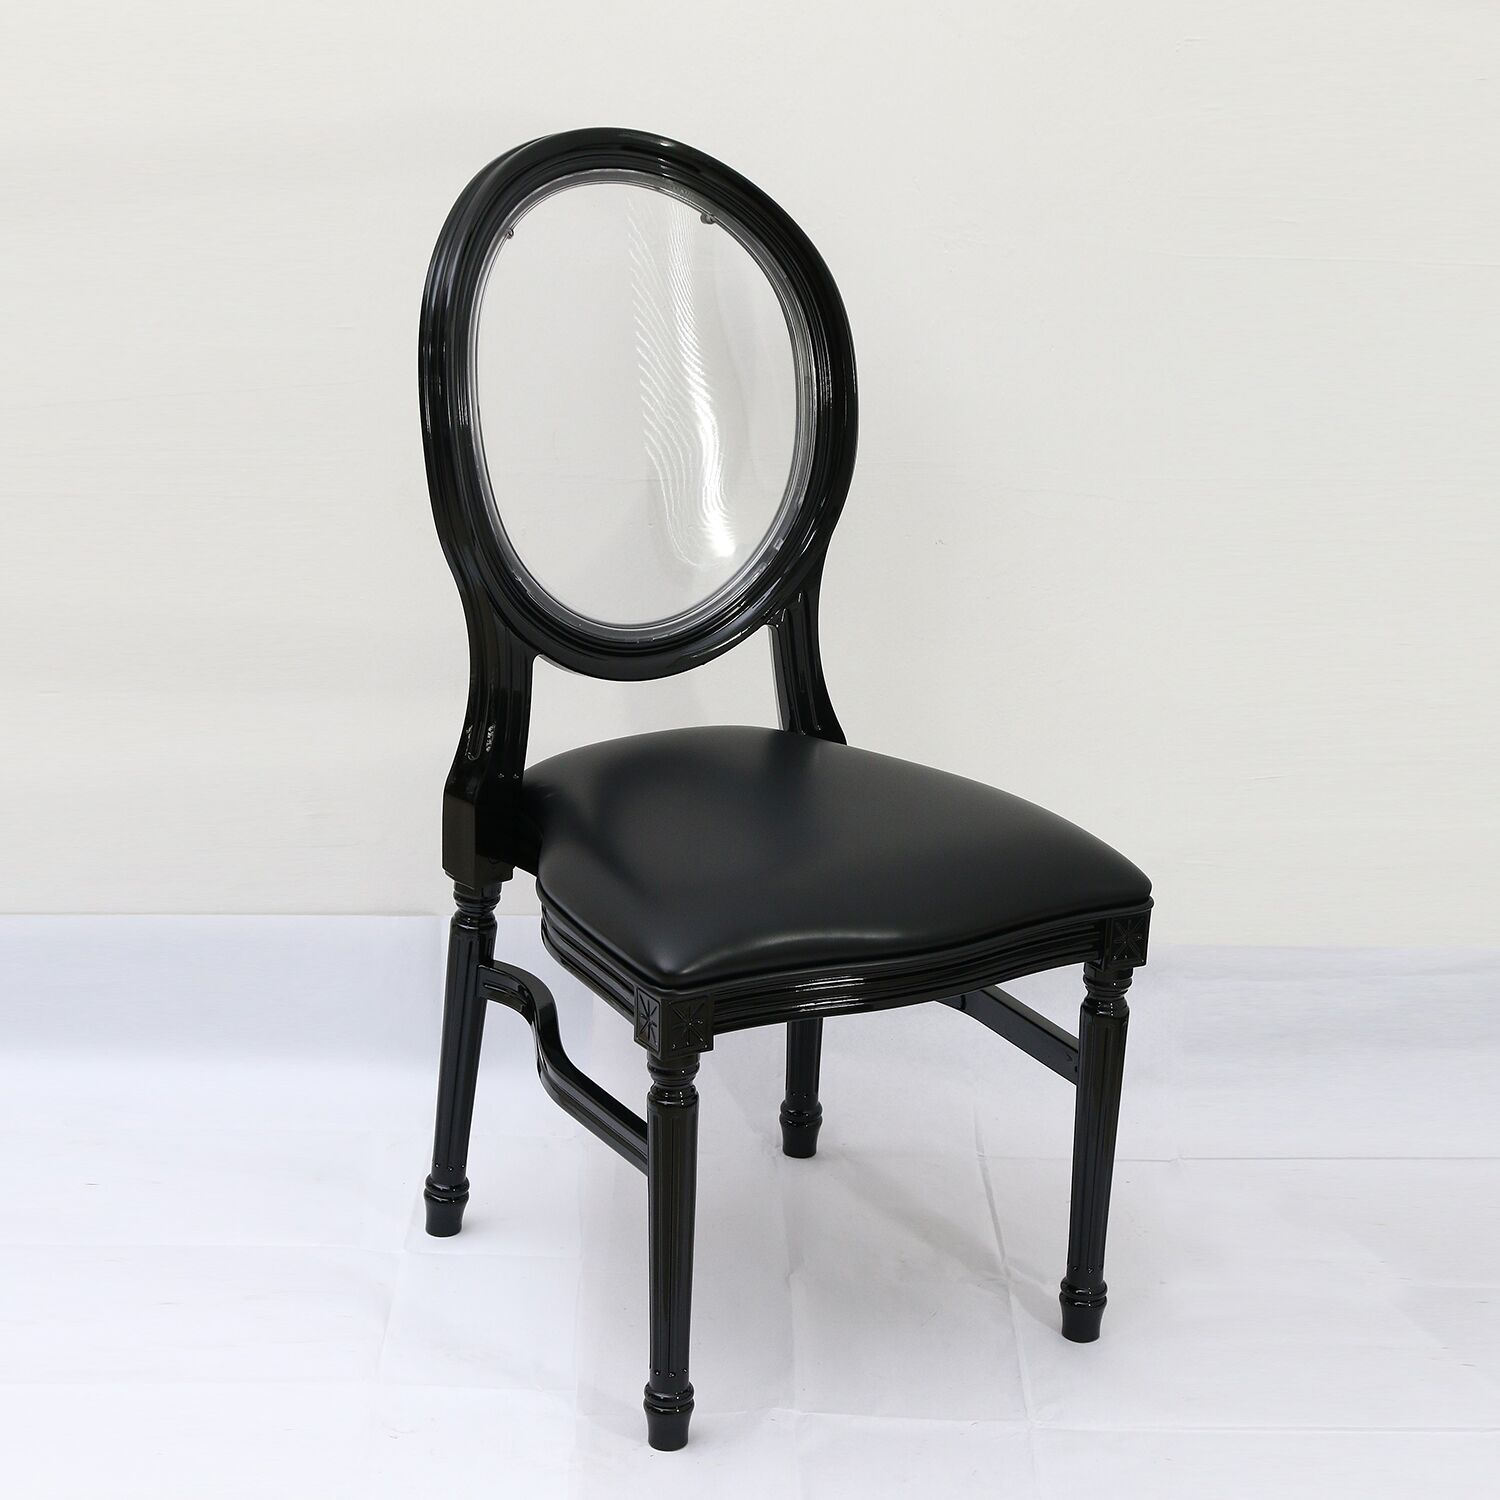 China Manufacturer for 3d Theatre Seating -